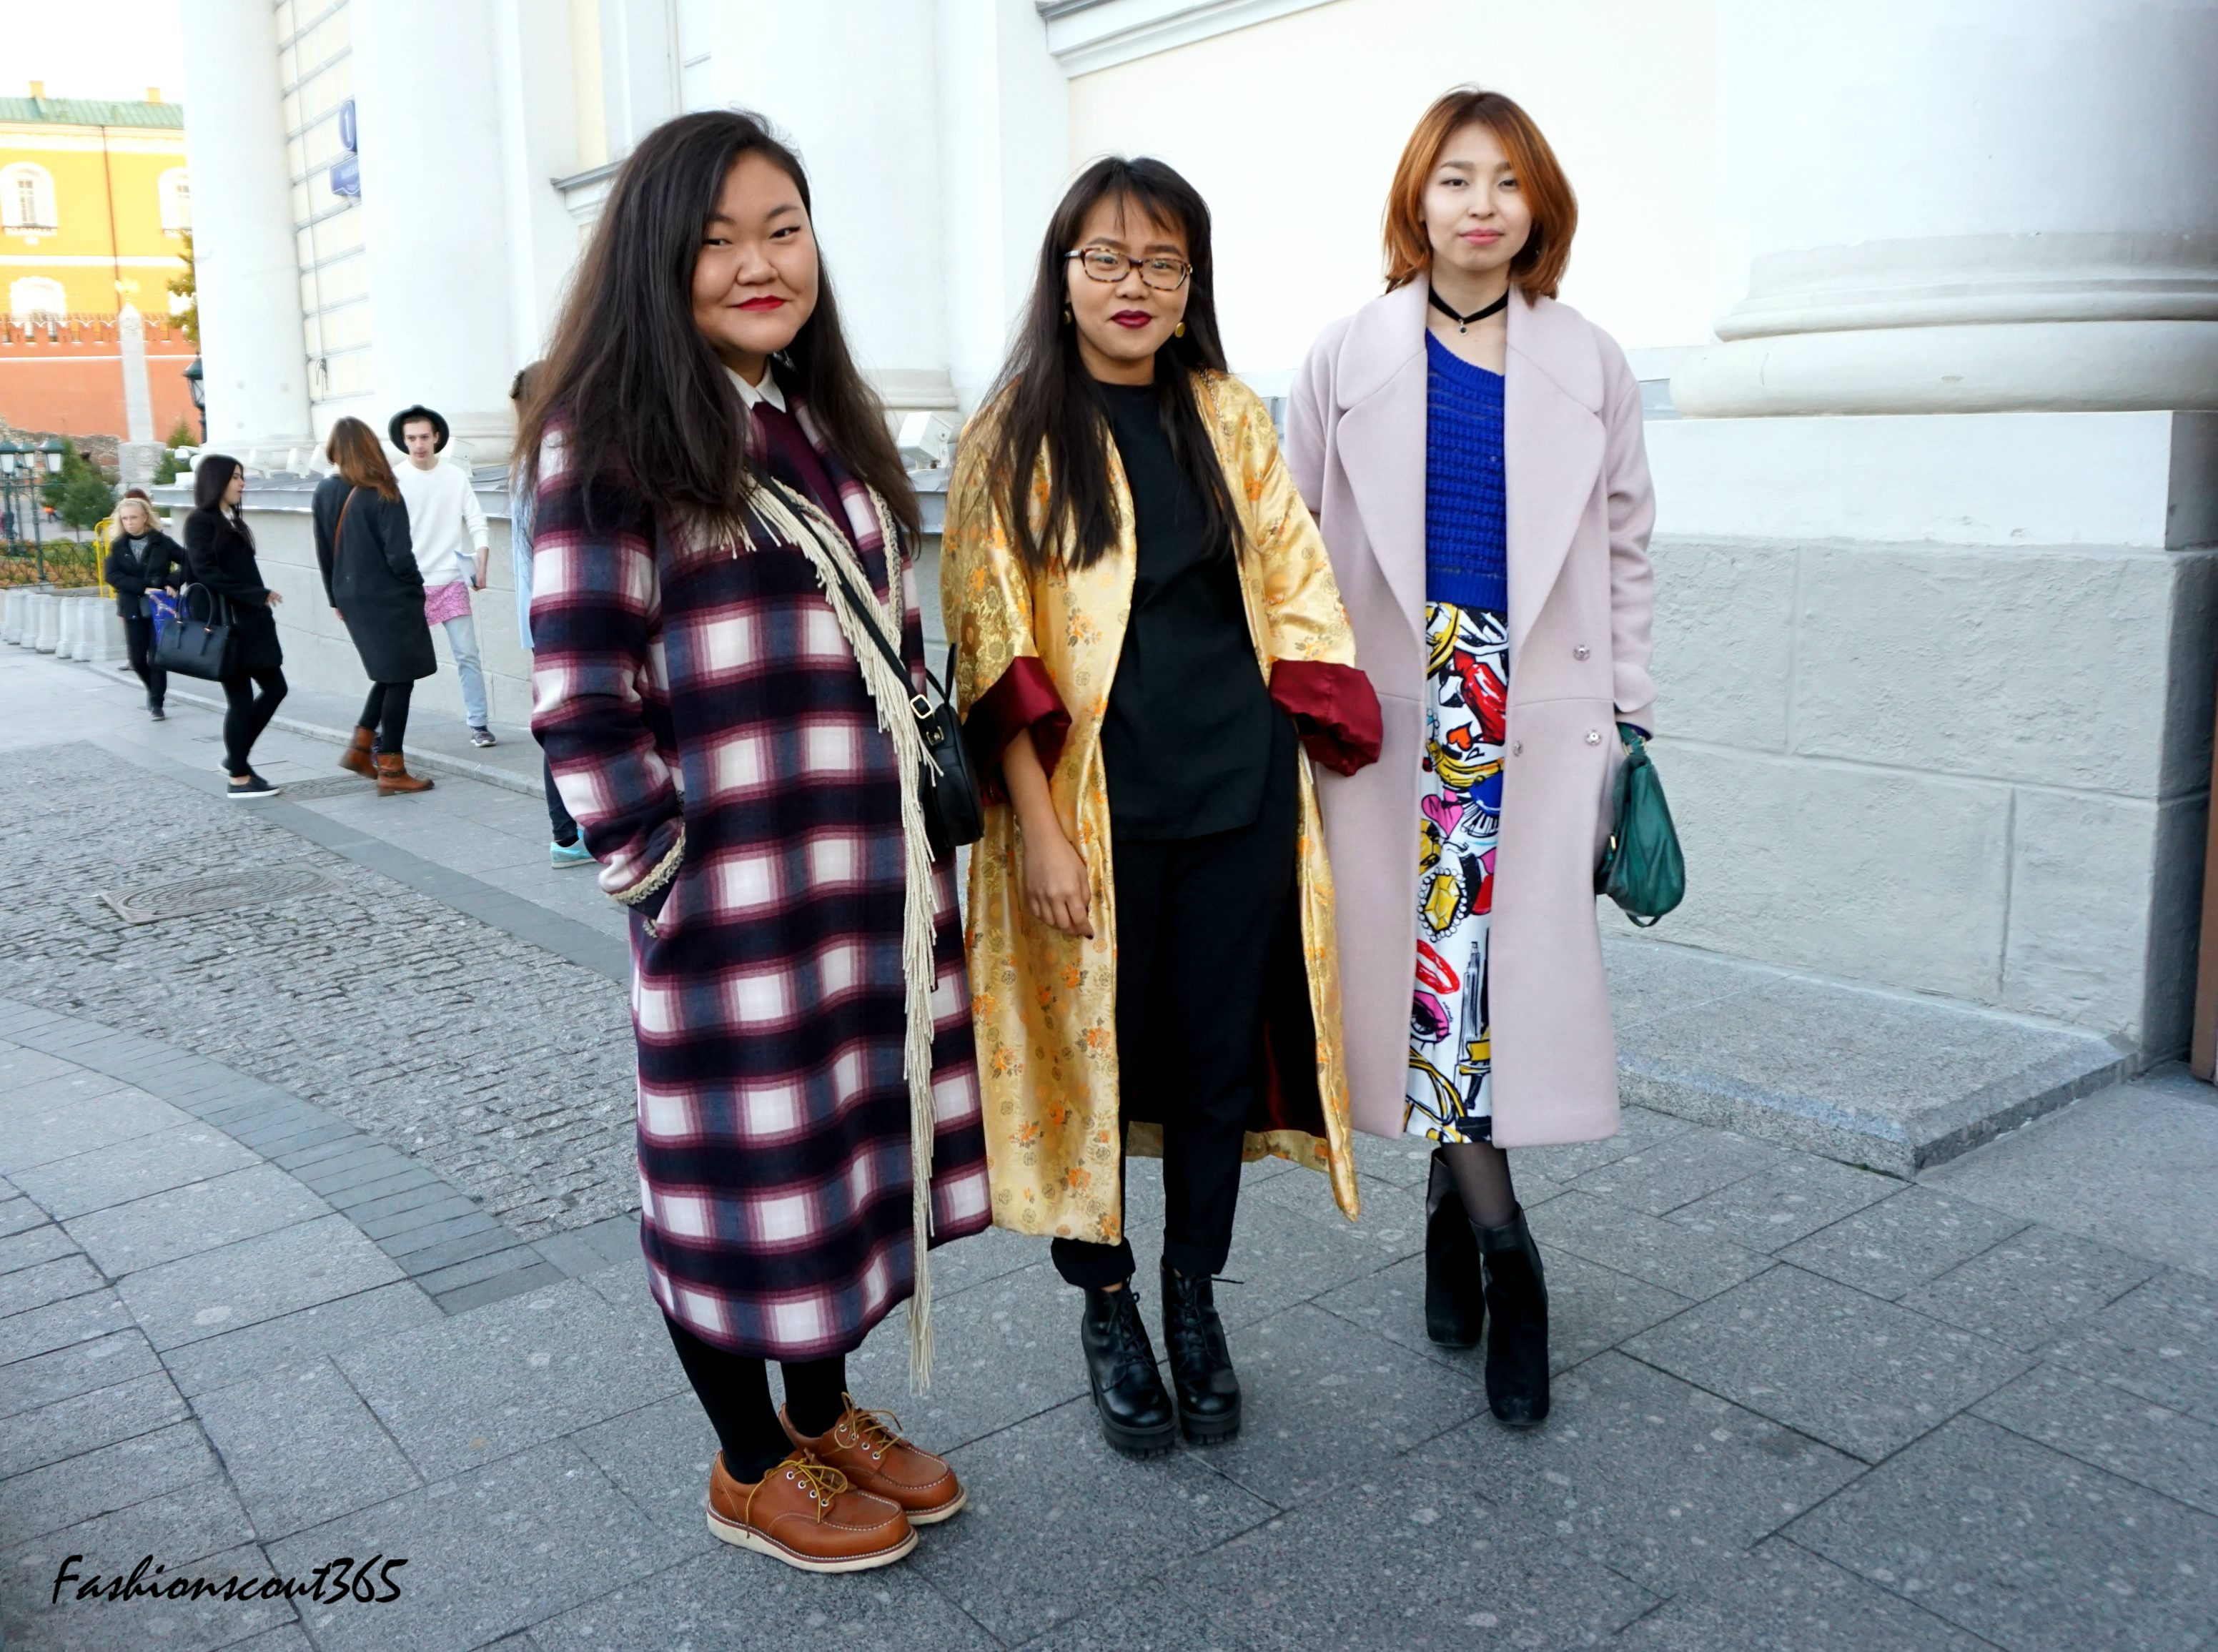 look_streetstyle_mbfwrussia_russian-blogger_herbst-mode_mantel_fashionscout365